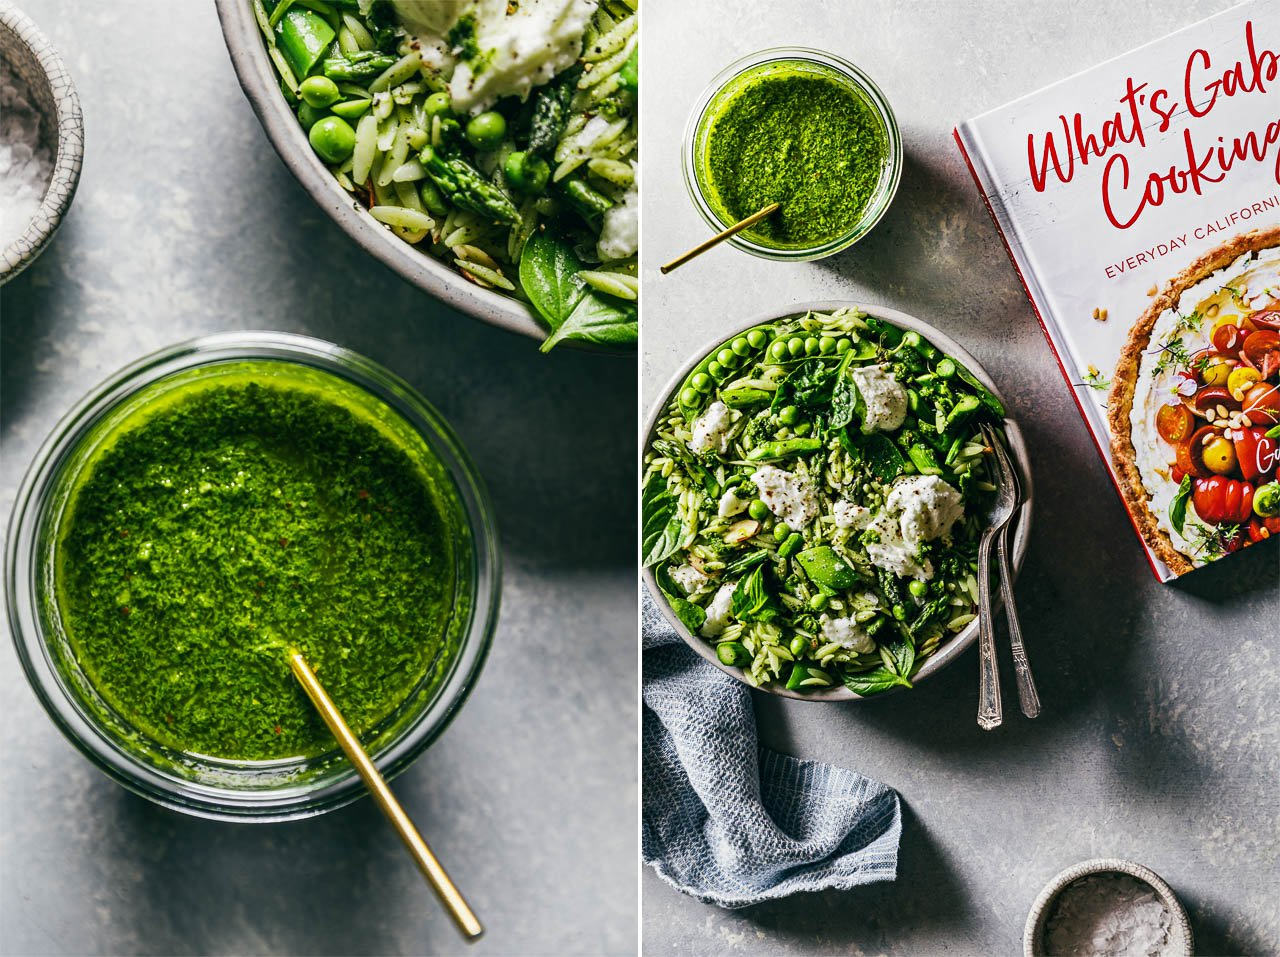 Green Orzo Salad w/ Basil Vinaigrette | HonestlyYUM (honestlyyum.com) #salad #vegetarian #recipe